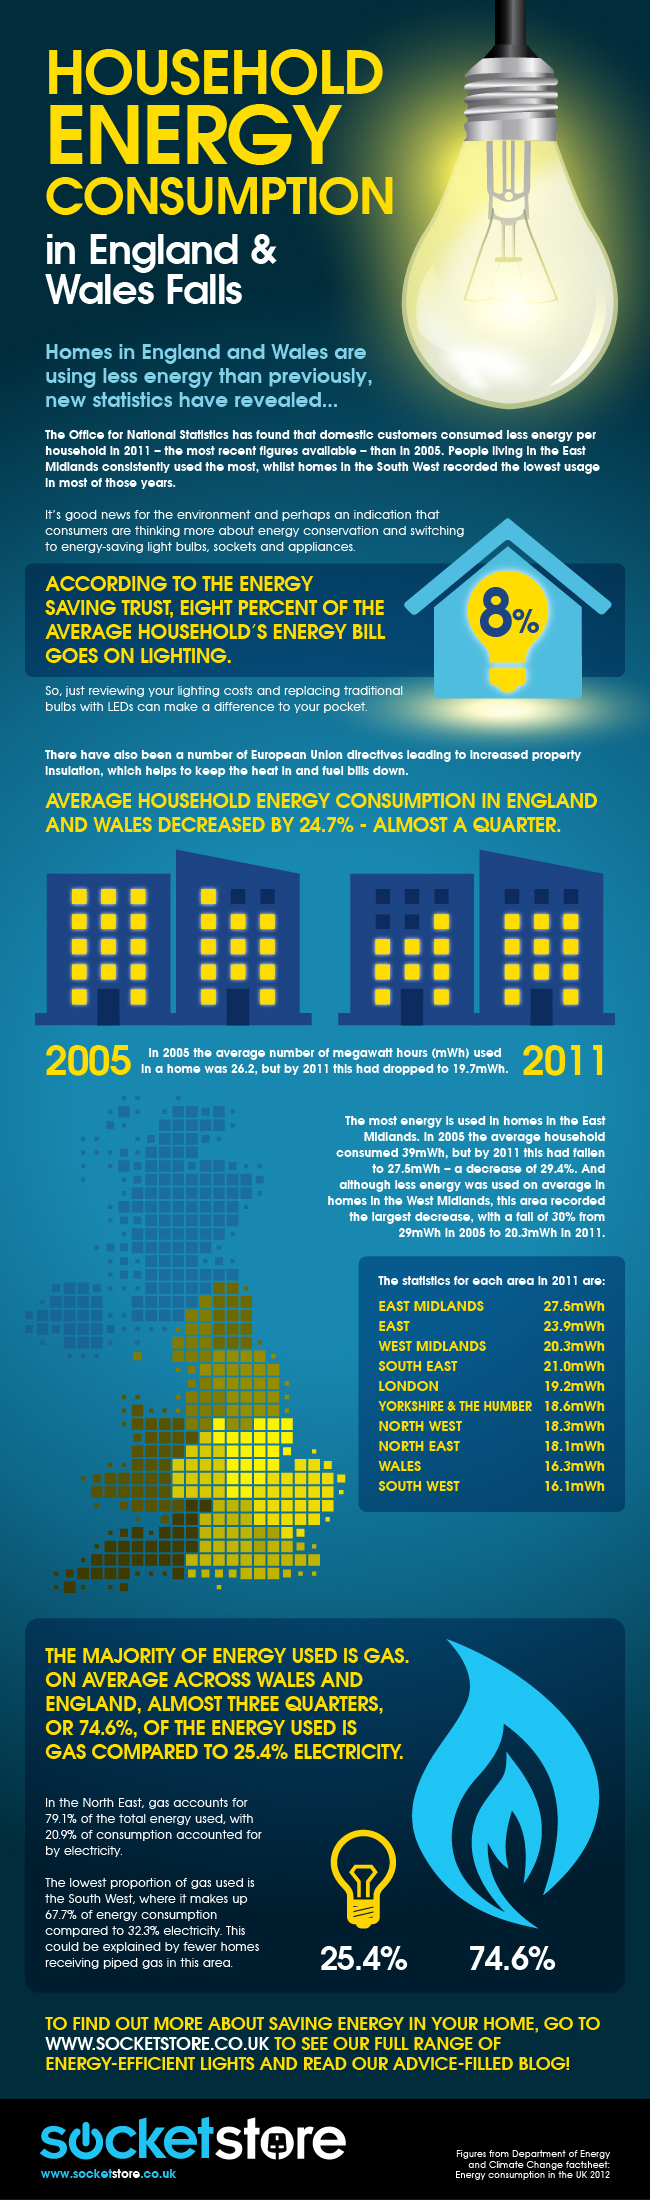 Household Energy Consumption Infographic